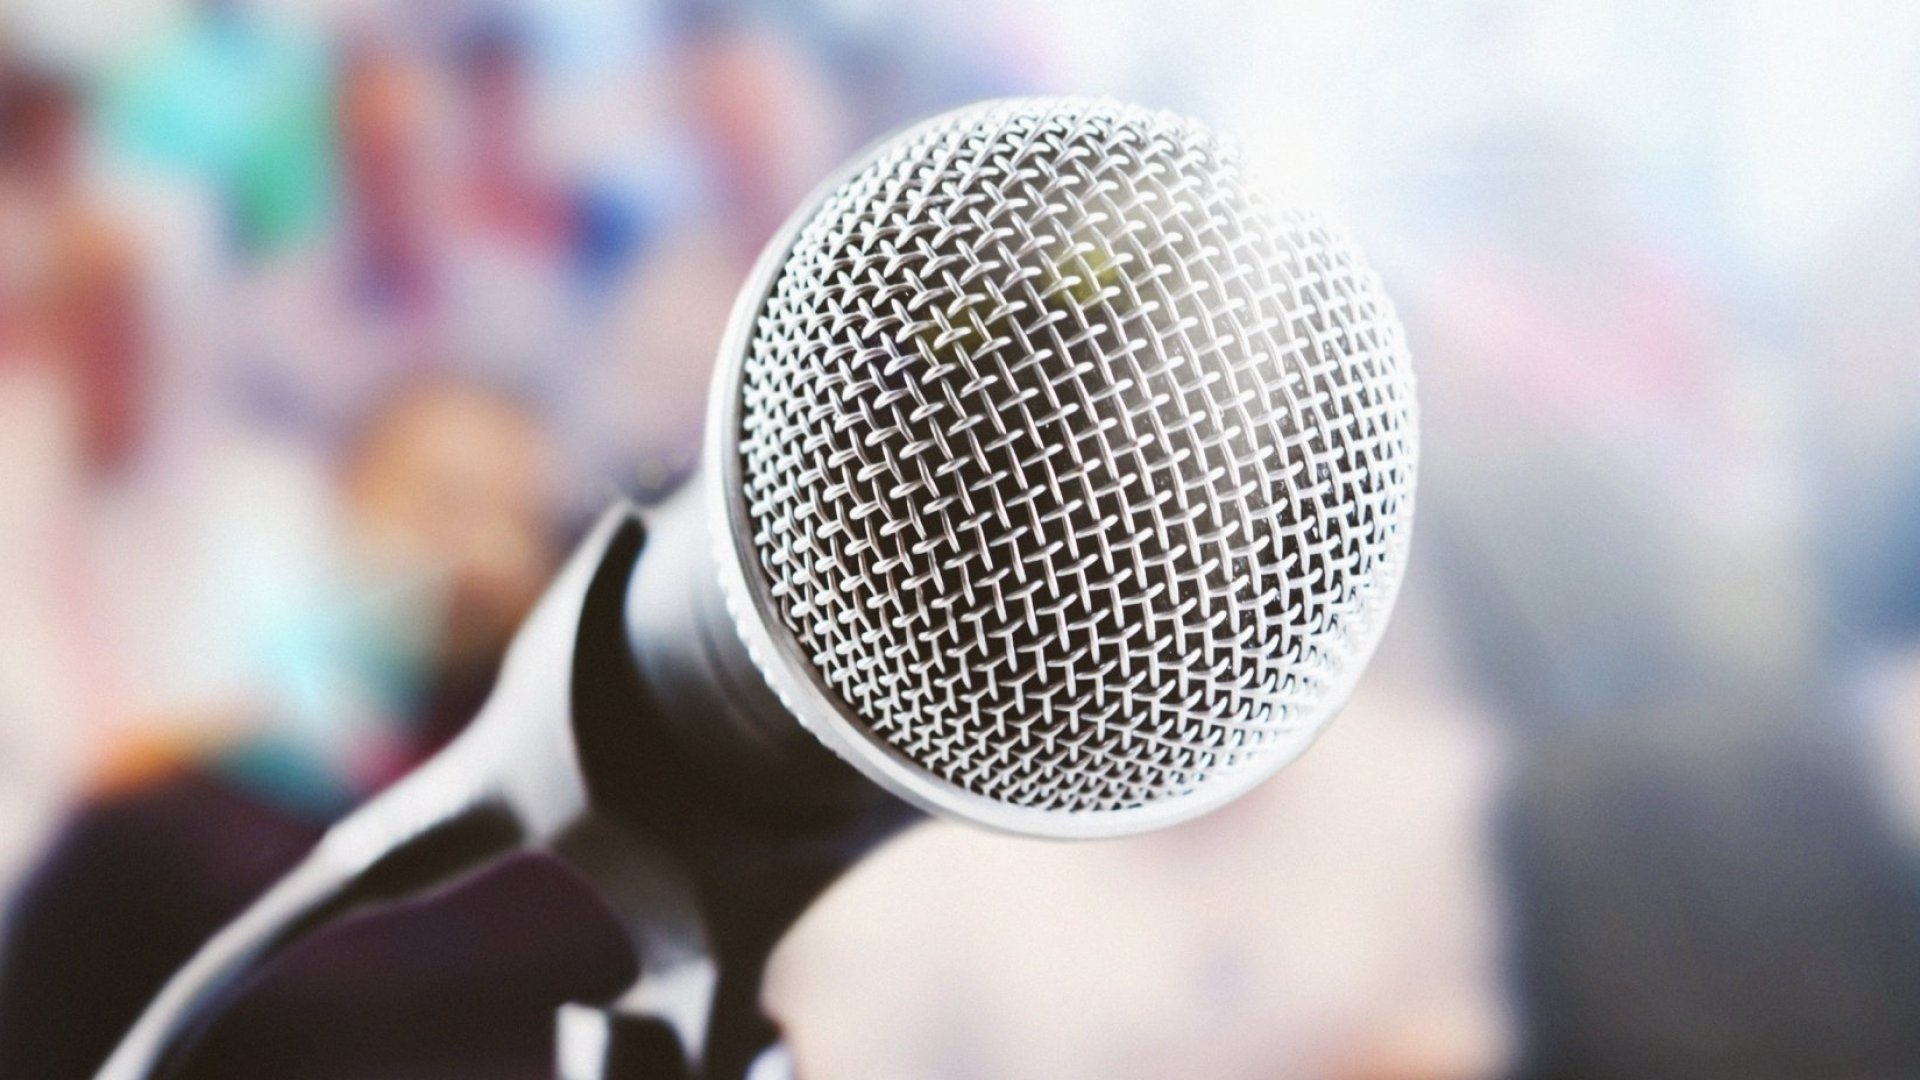 Are You Charismatic? It May Be Hurting Your Speaking Career. Here's How Not to Let It Sabotage Your Effectiveness as a Presenter